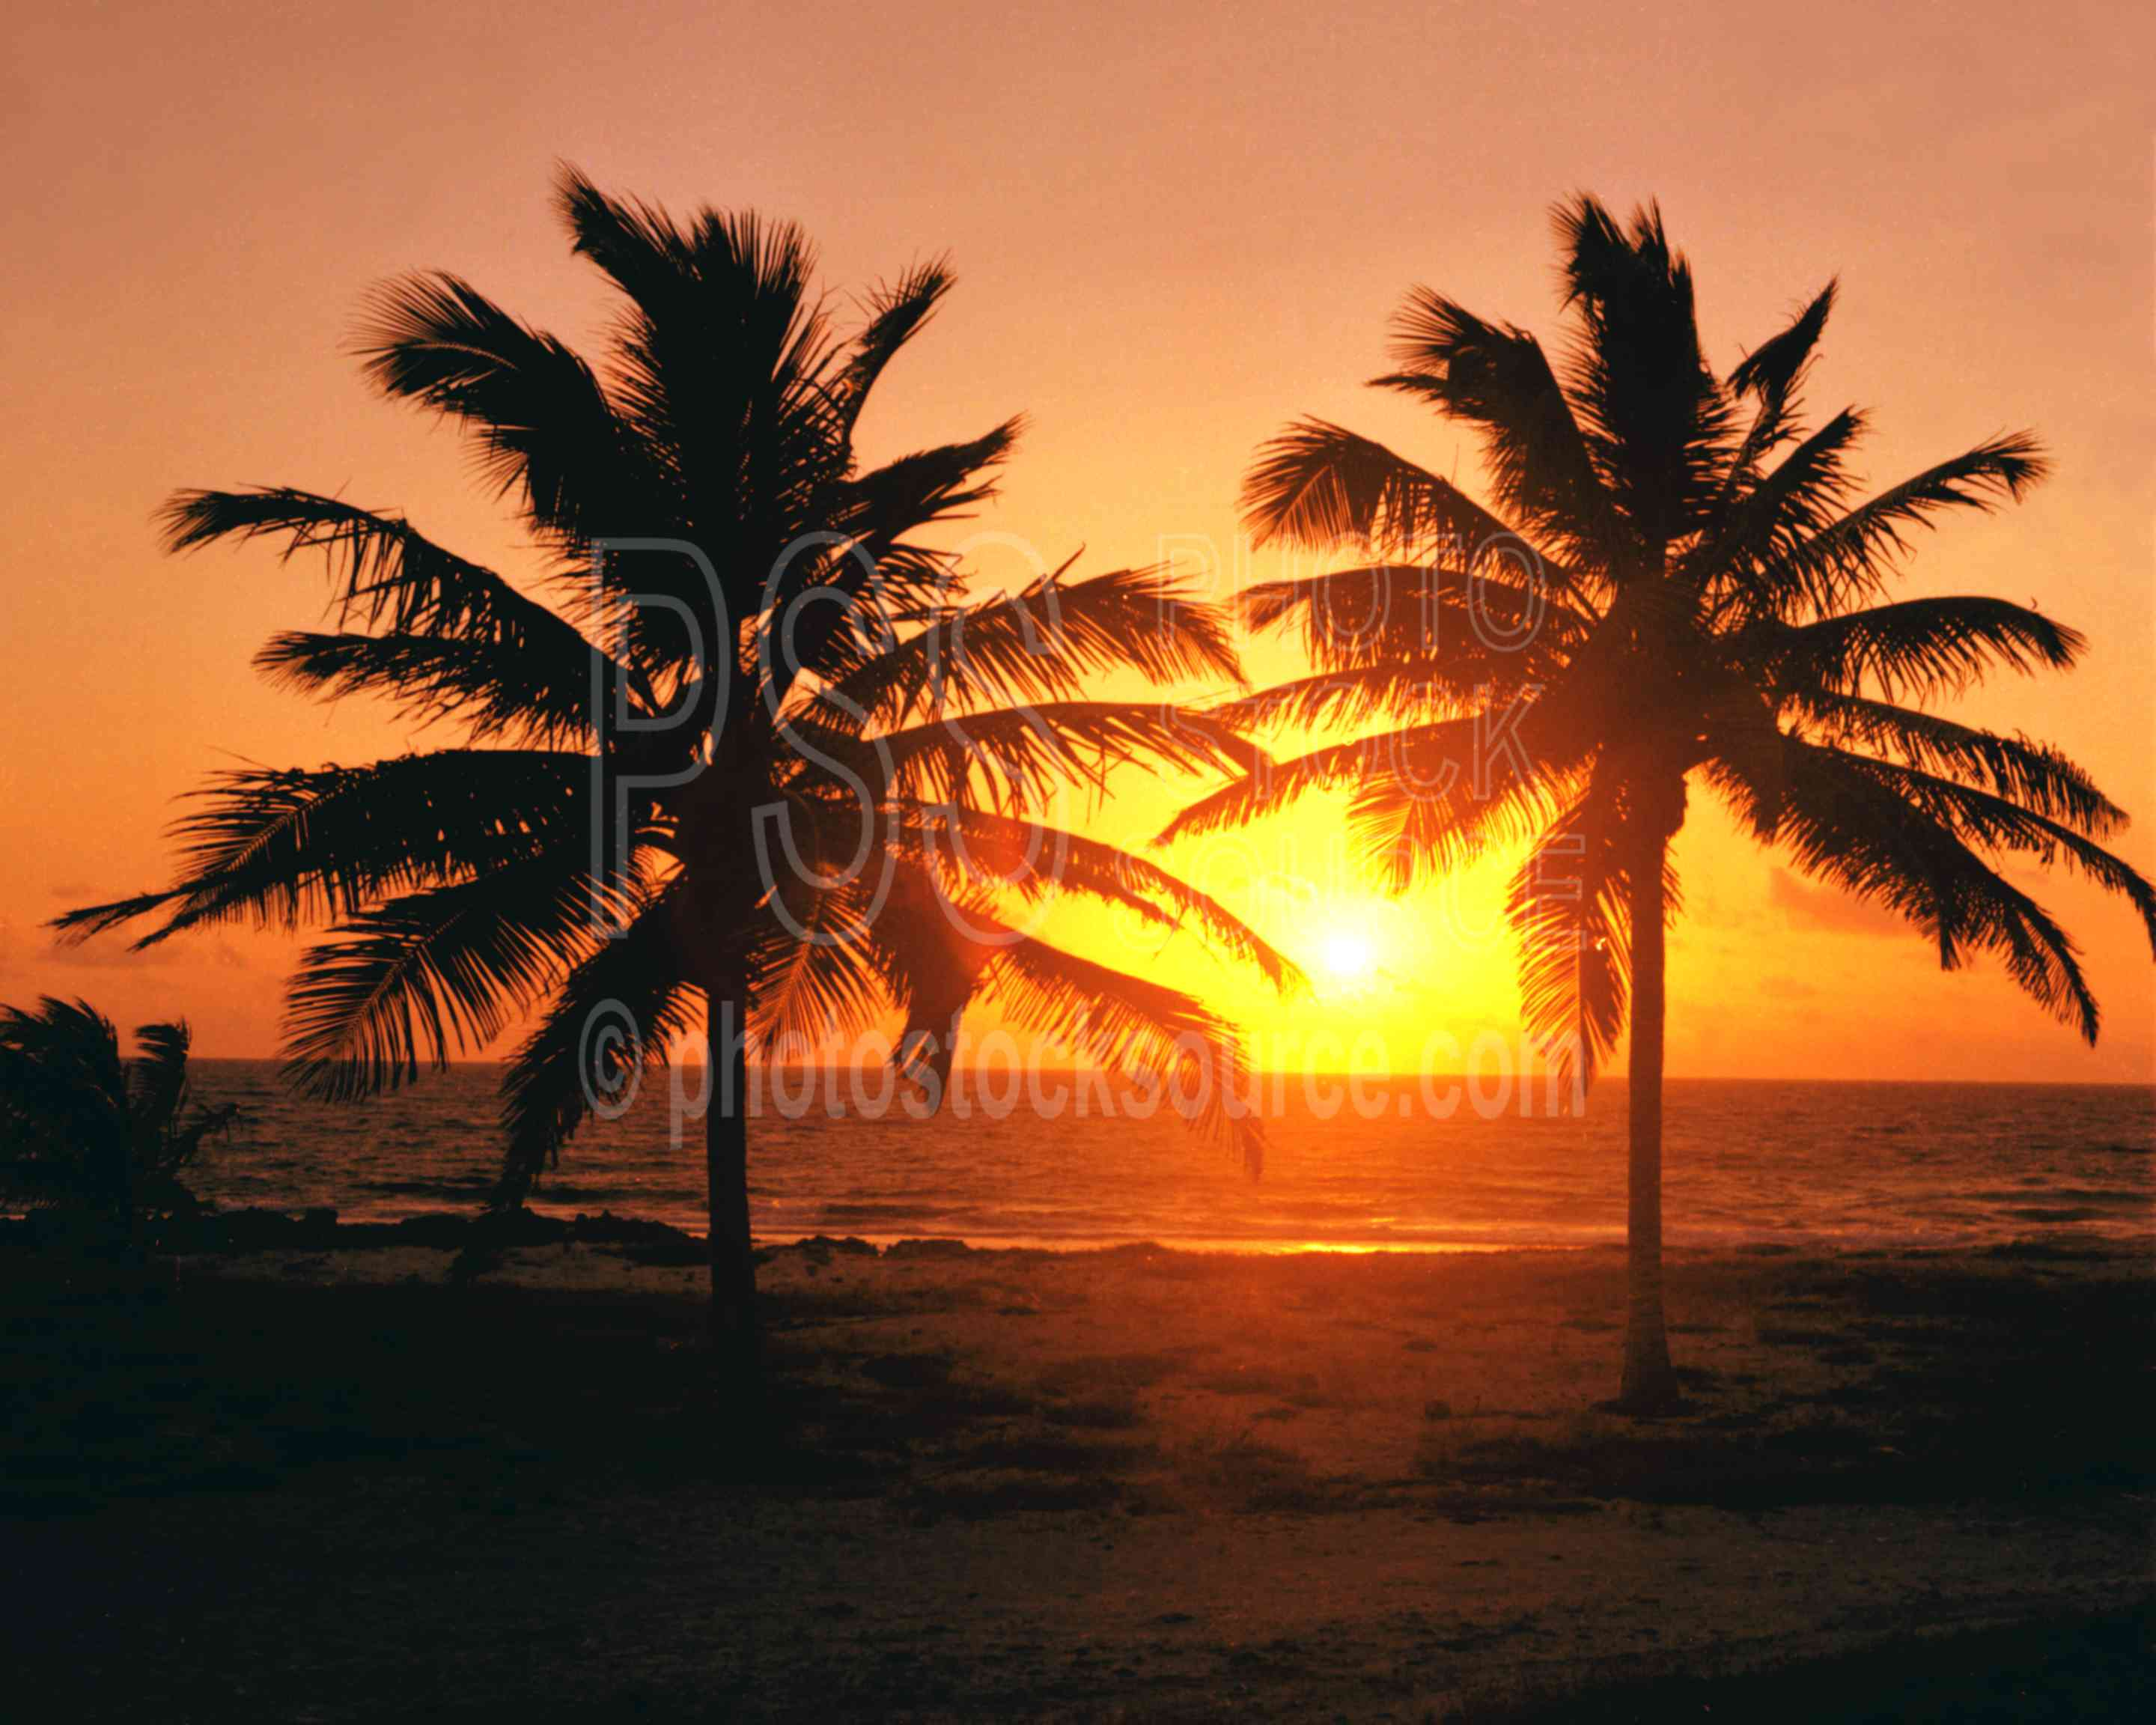 Palm Trees at Sunset,palm,palm tree,sunset,nature